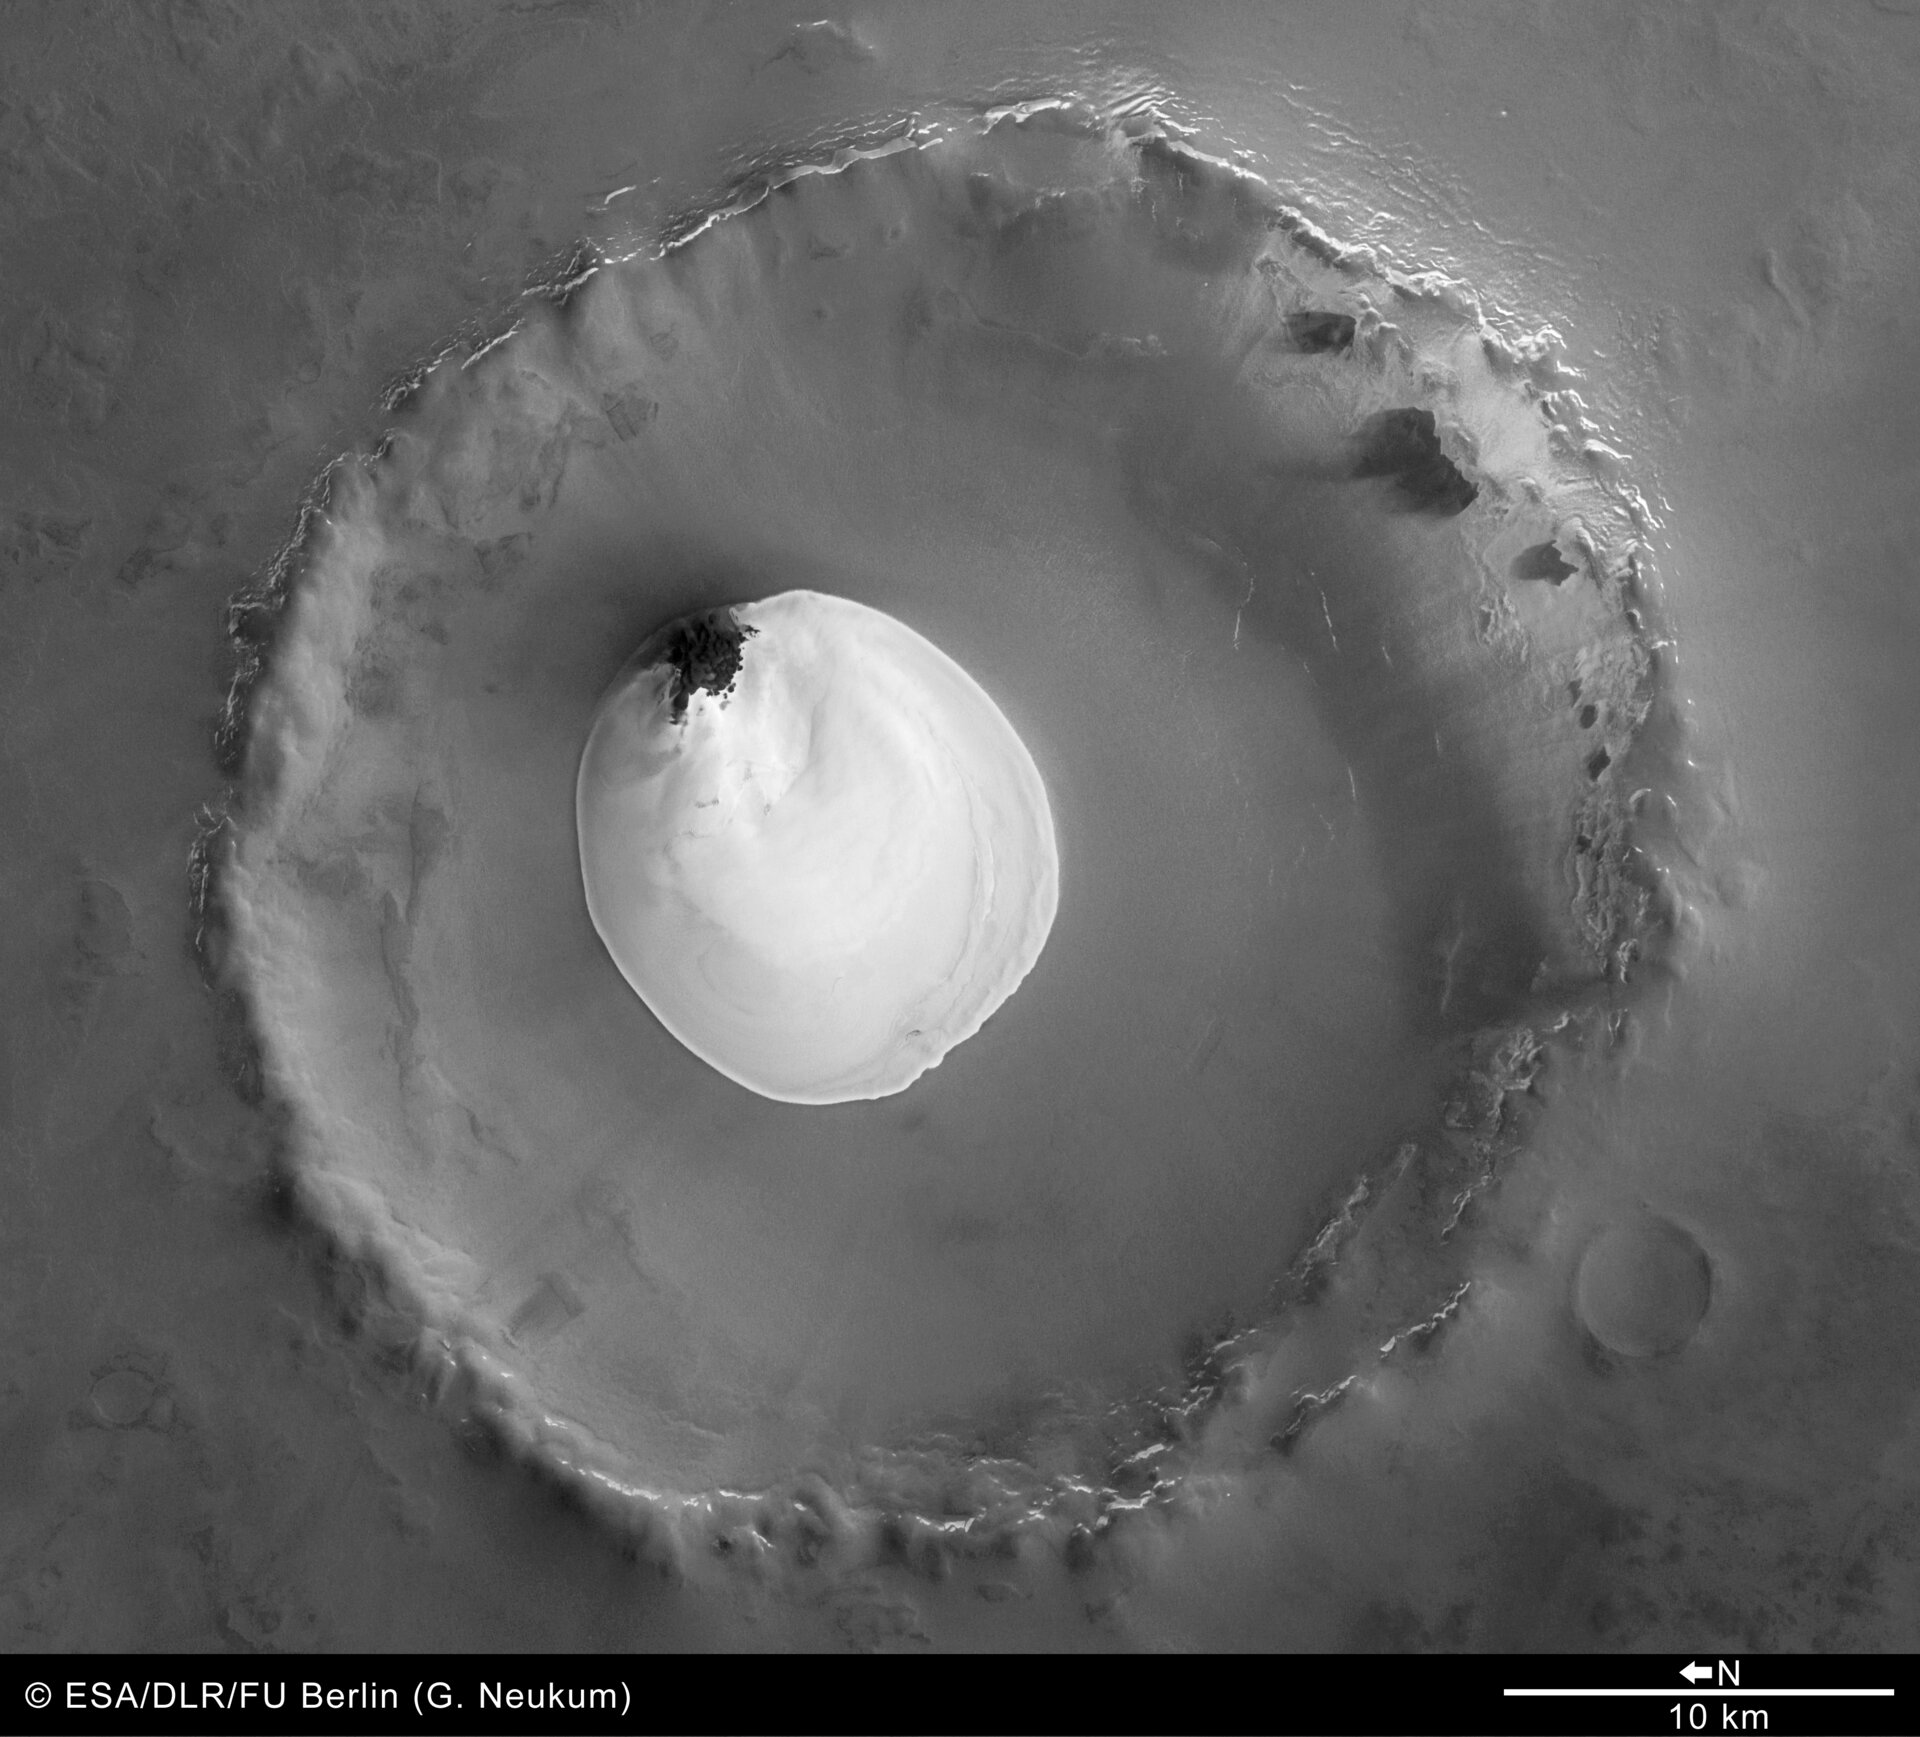 Black and white view of crater with water ice